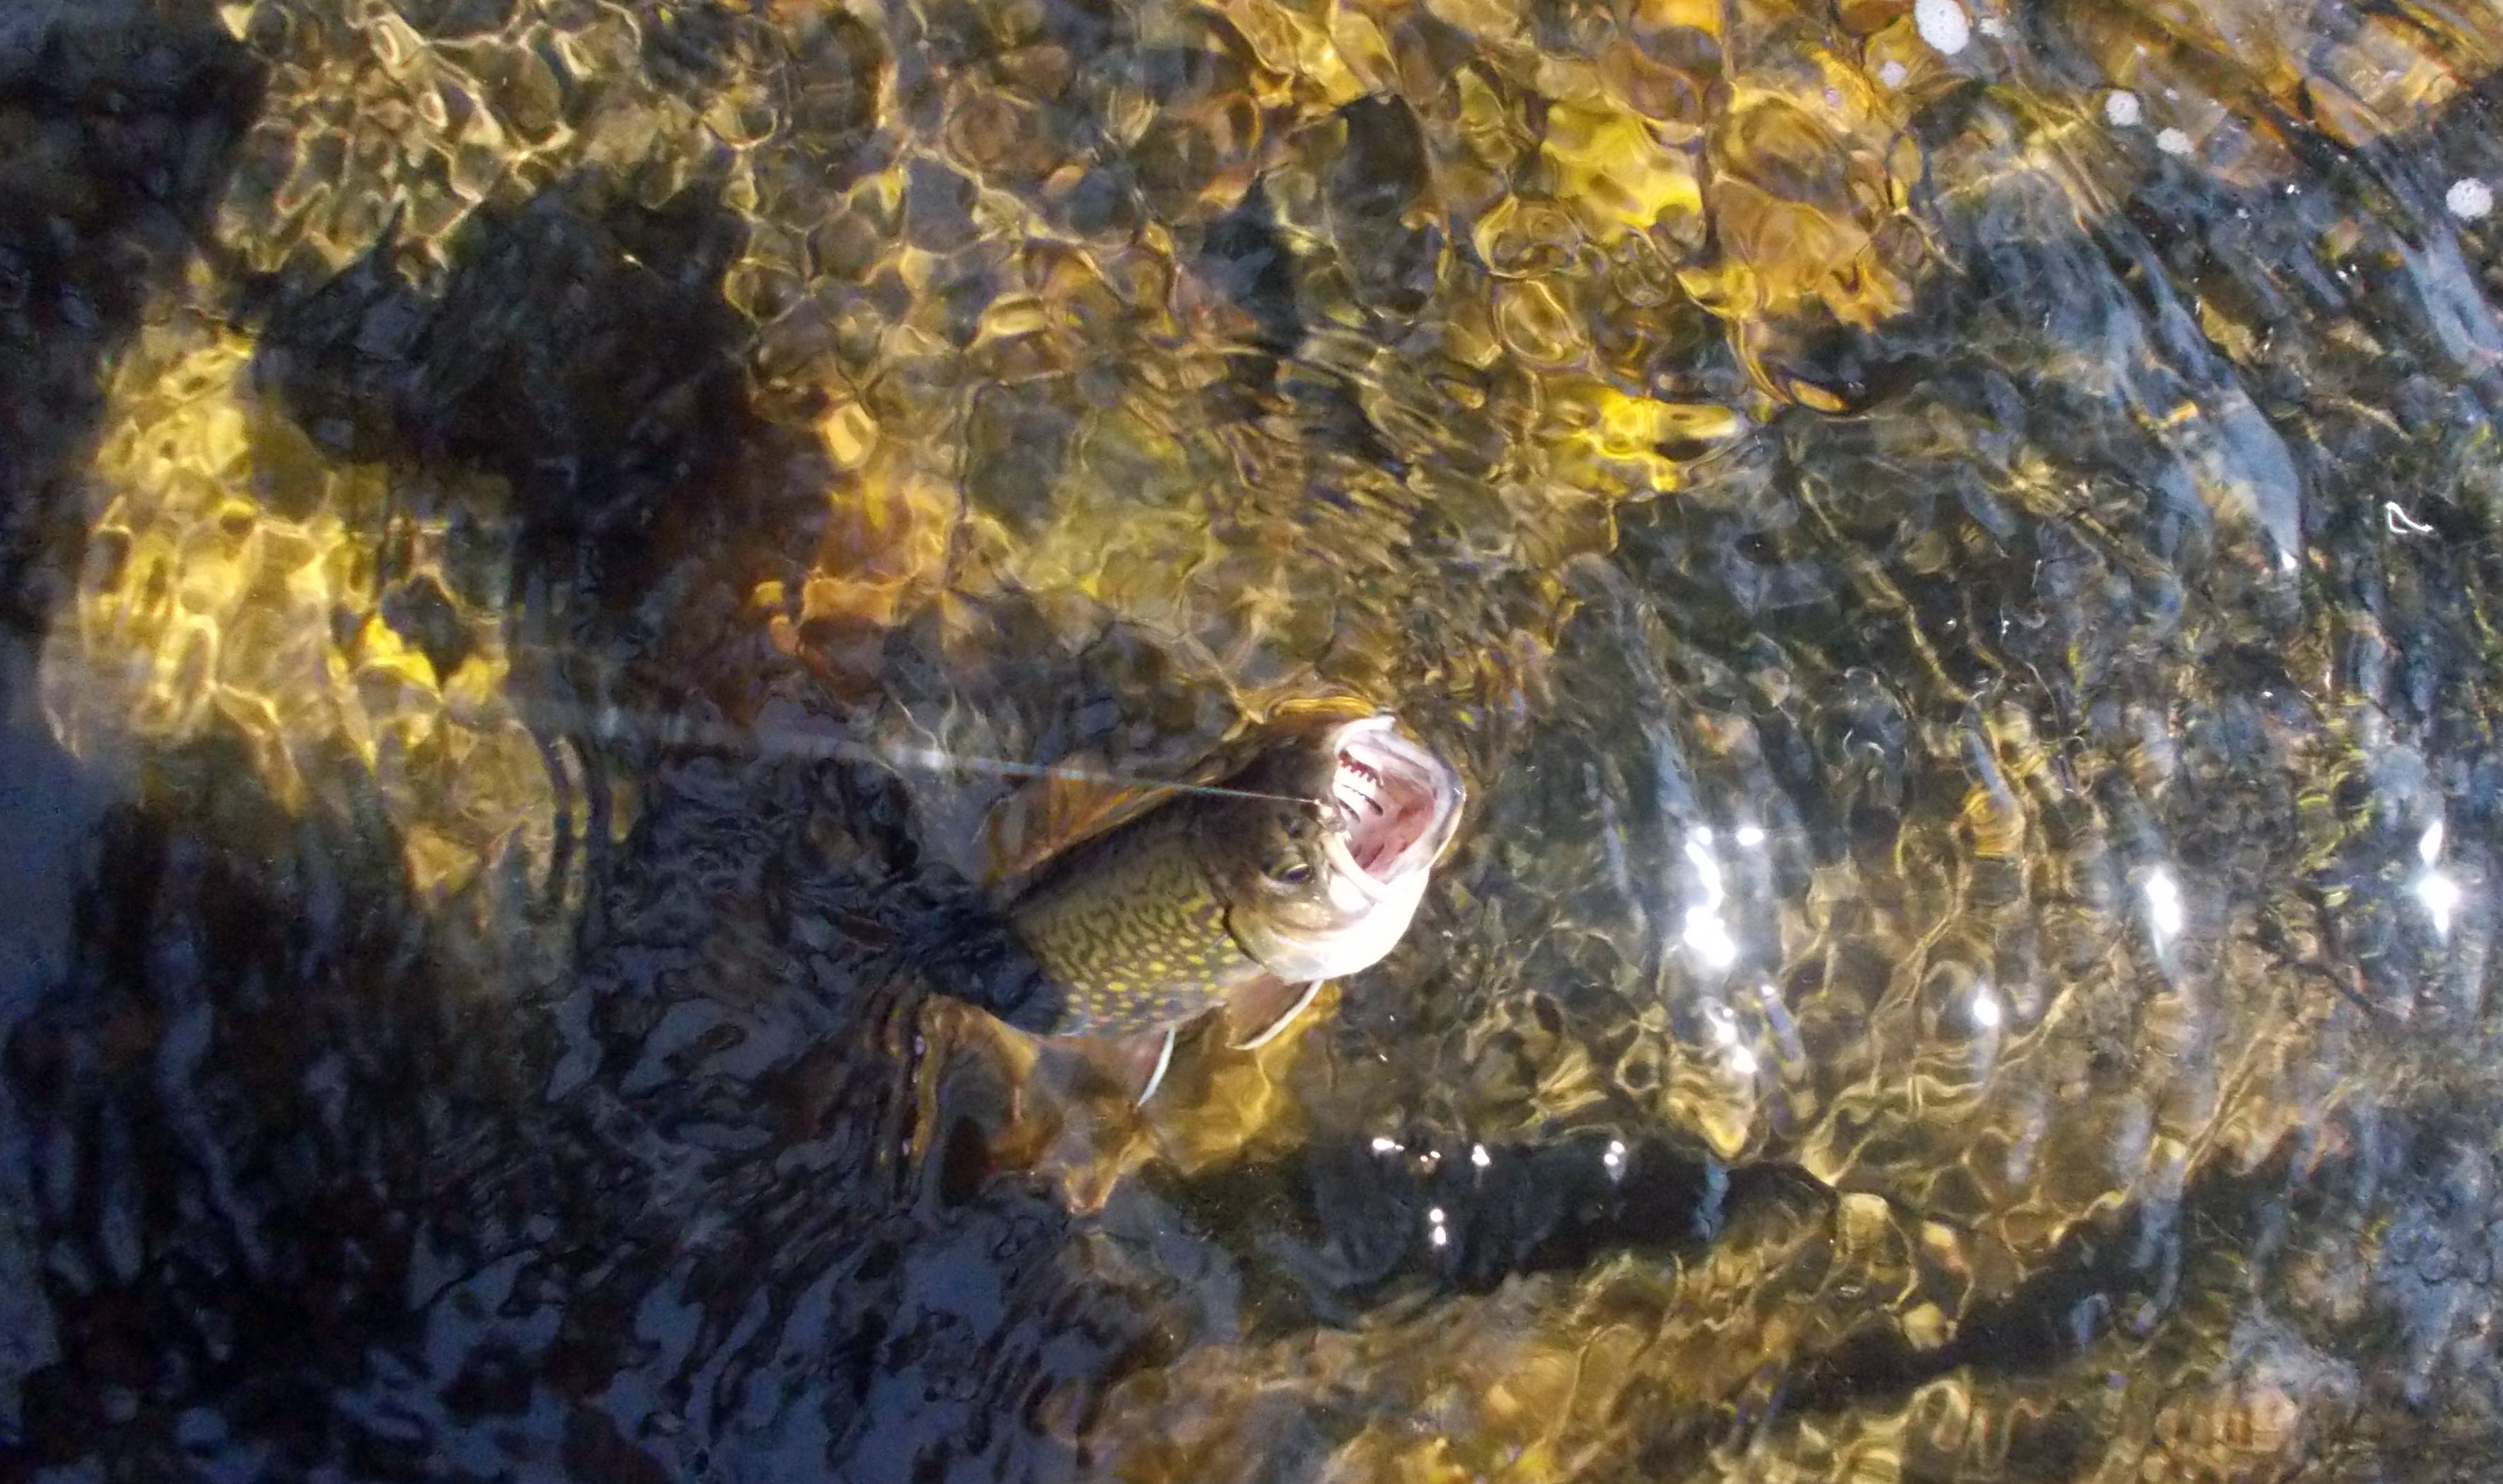 <strong>Early fishing season often means prowling brook trout streams, searching for these elusive wild fish. And putting them back in the water unharmed, of course.<em>Photo by Patrick L. Sullivan</em></strong>